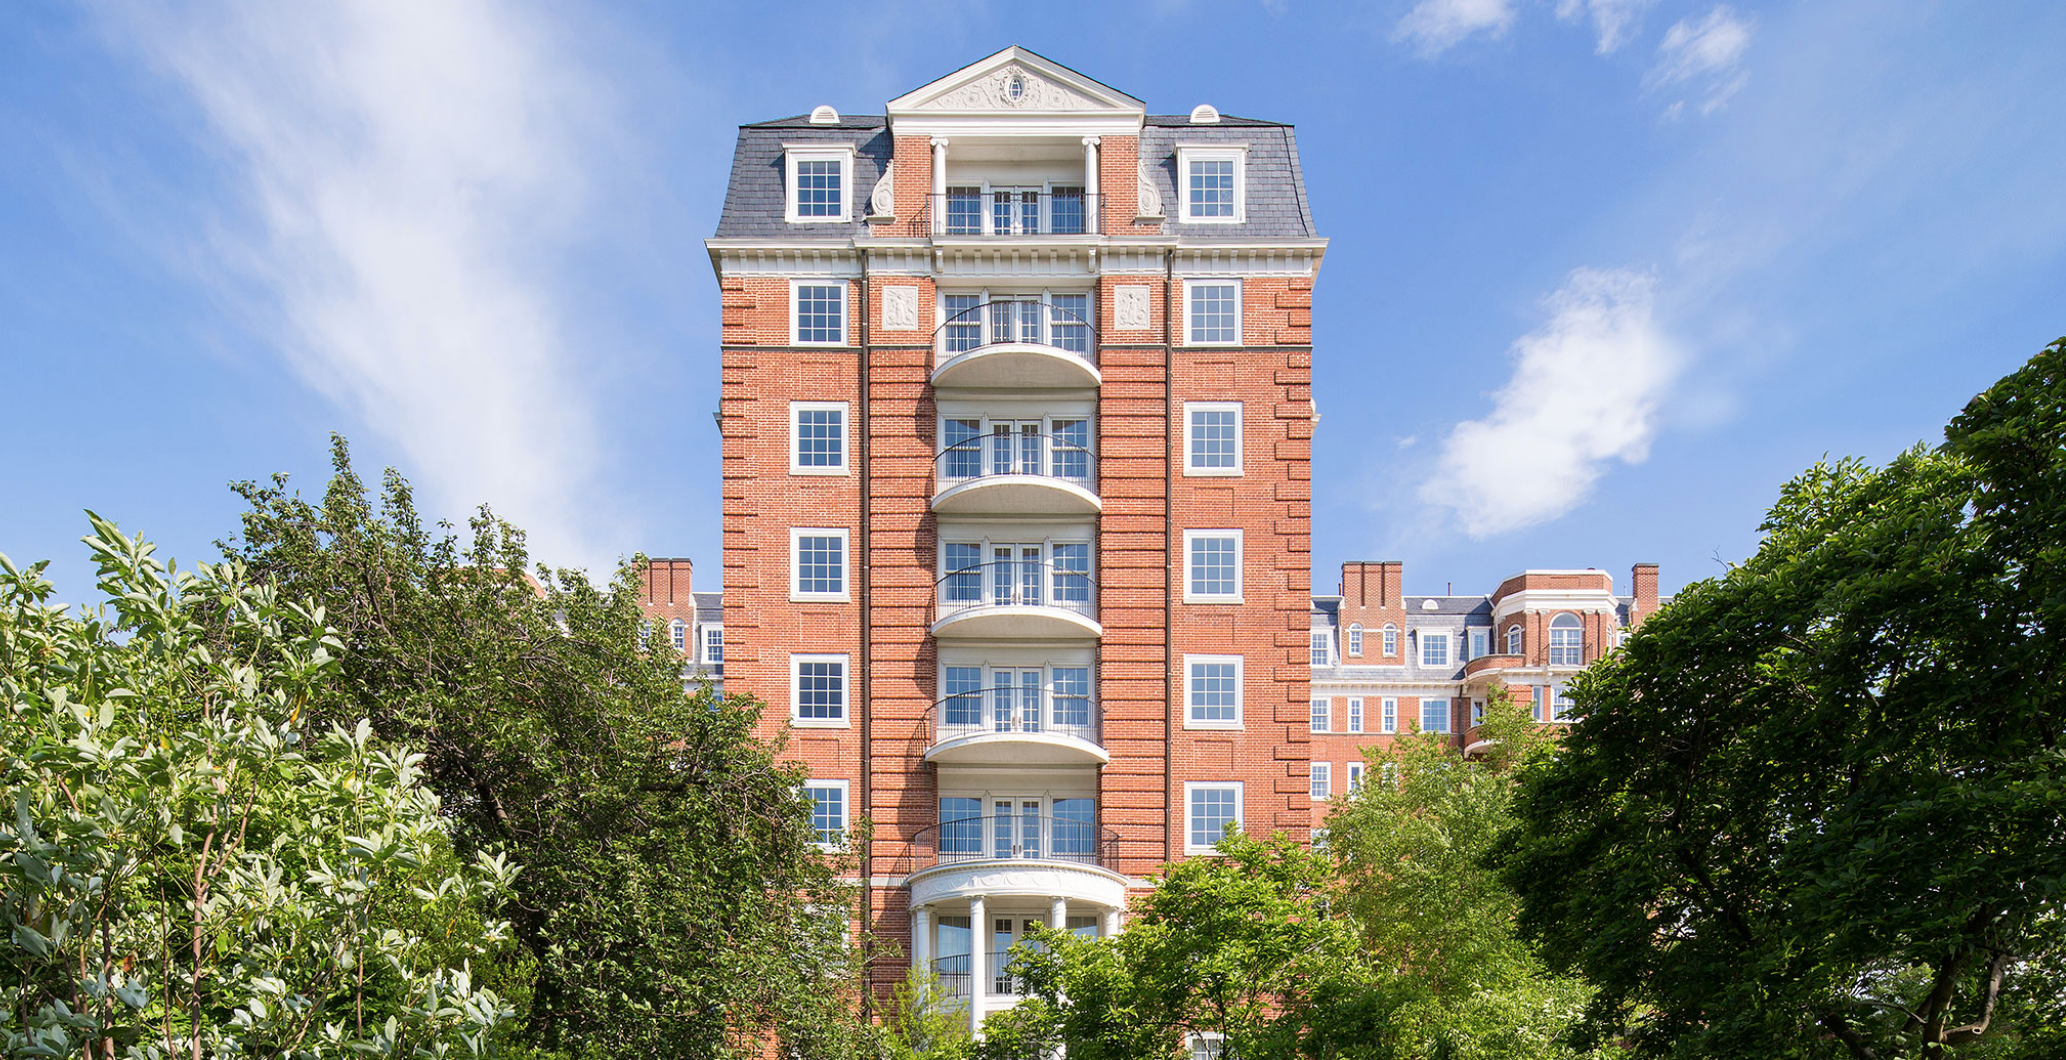 The historic nine-story building, located on the corner of Connecticut Avenue and Woodley Road, NW will have units ranging from $2.9 million to the $9.9 million penthouse! Once completed the Wardman Tower will be the priciest condominium building in the District to date. The renovation of the Wardman Tower reveals 32 rare historic two-to-four bedroom homes ranging from 2,200 - 4,600 square feet. (Wardman Tower Condominium Residence)